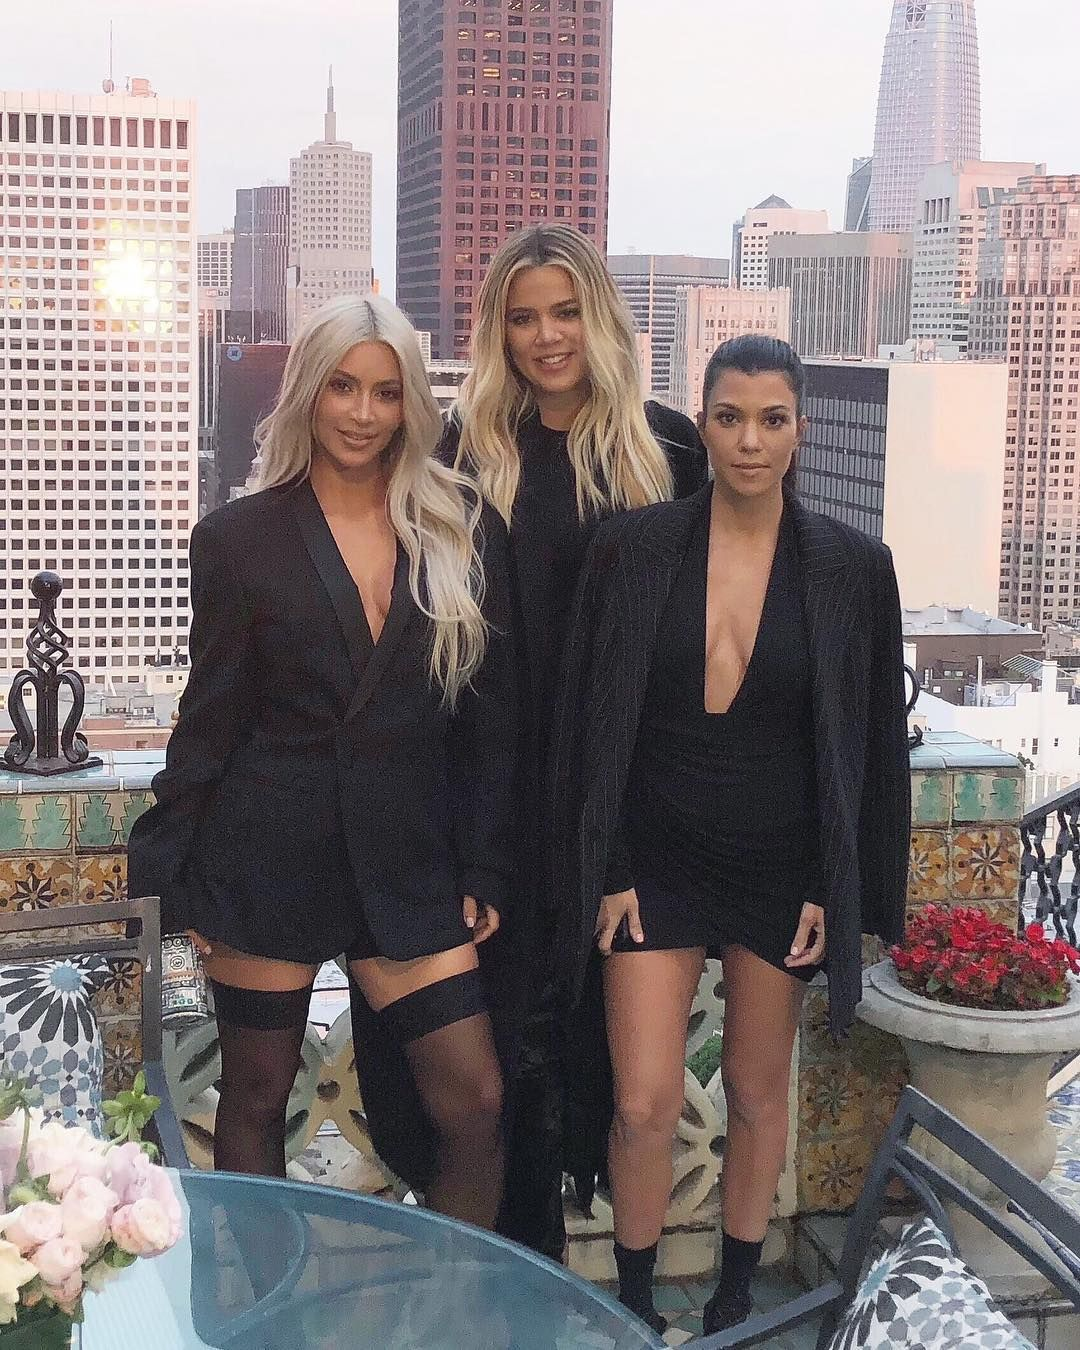 'Keeping Up with the Kardashians' reportedly renewed